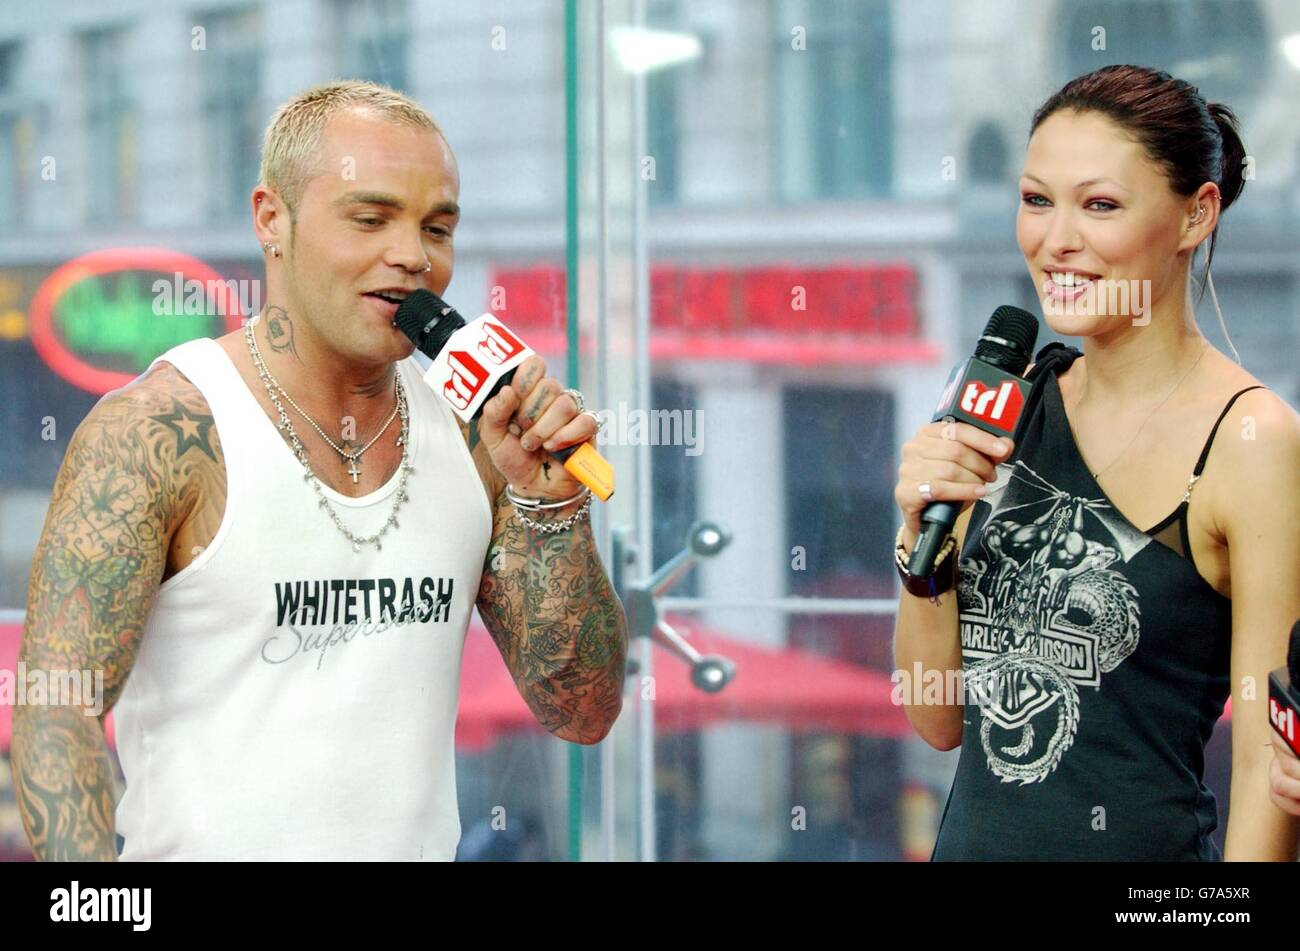 Shifty MTV's TRL - Total Request Live - show - Stock Image